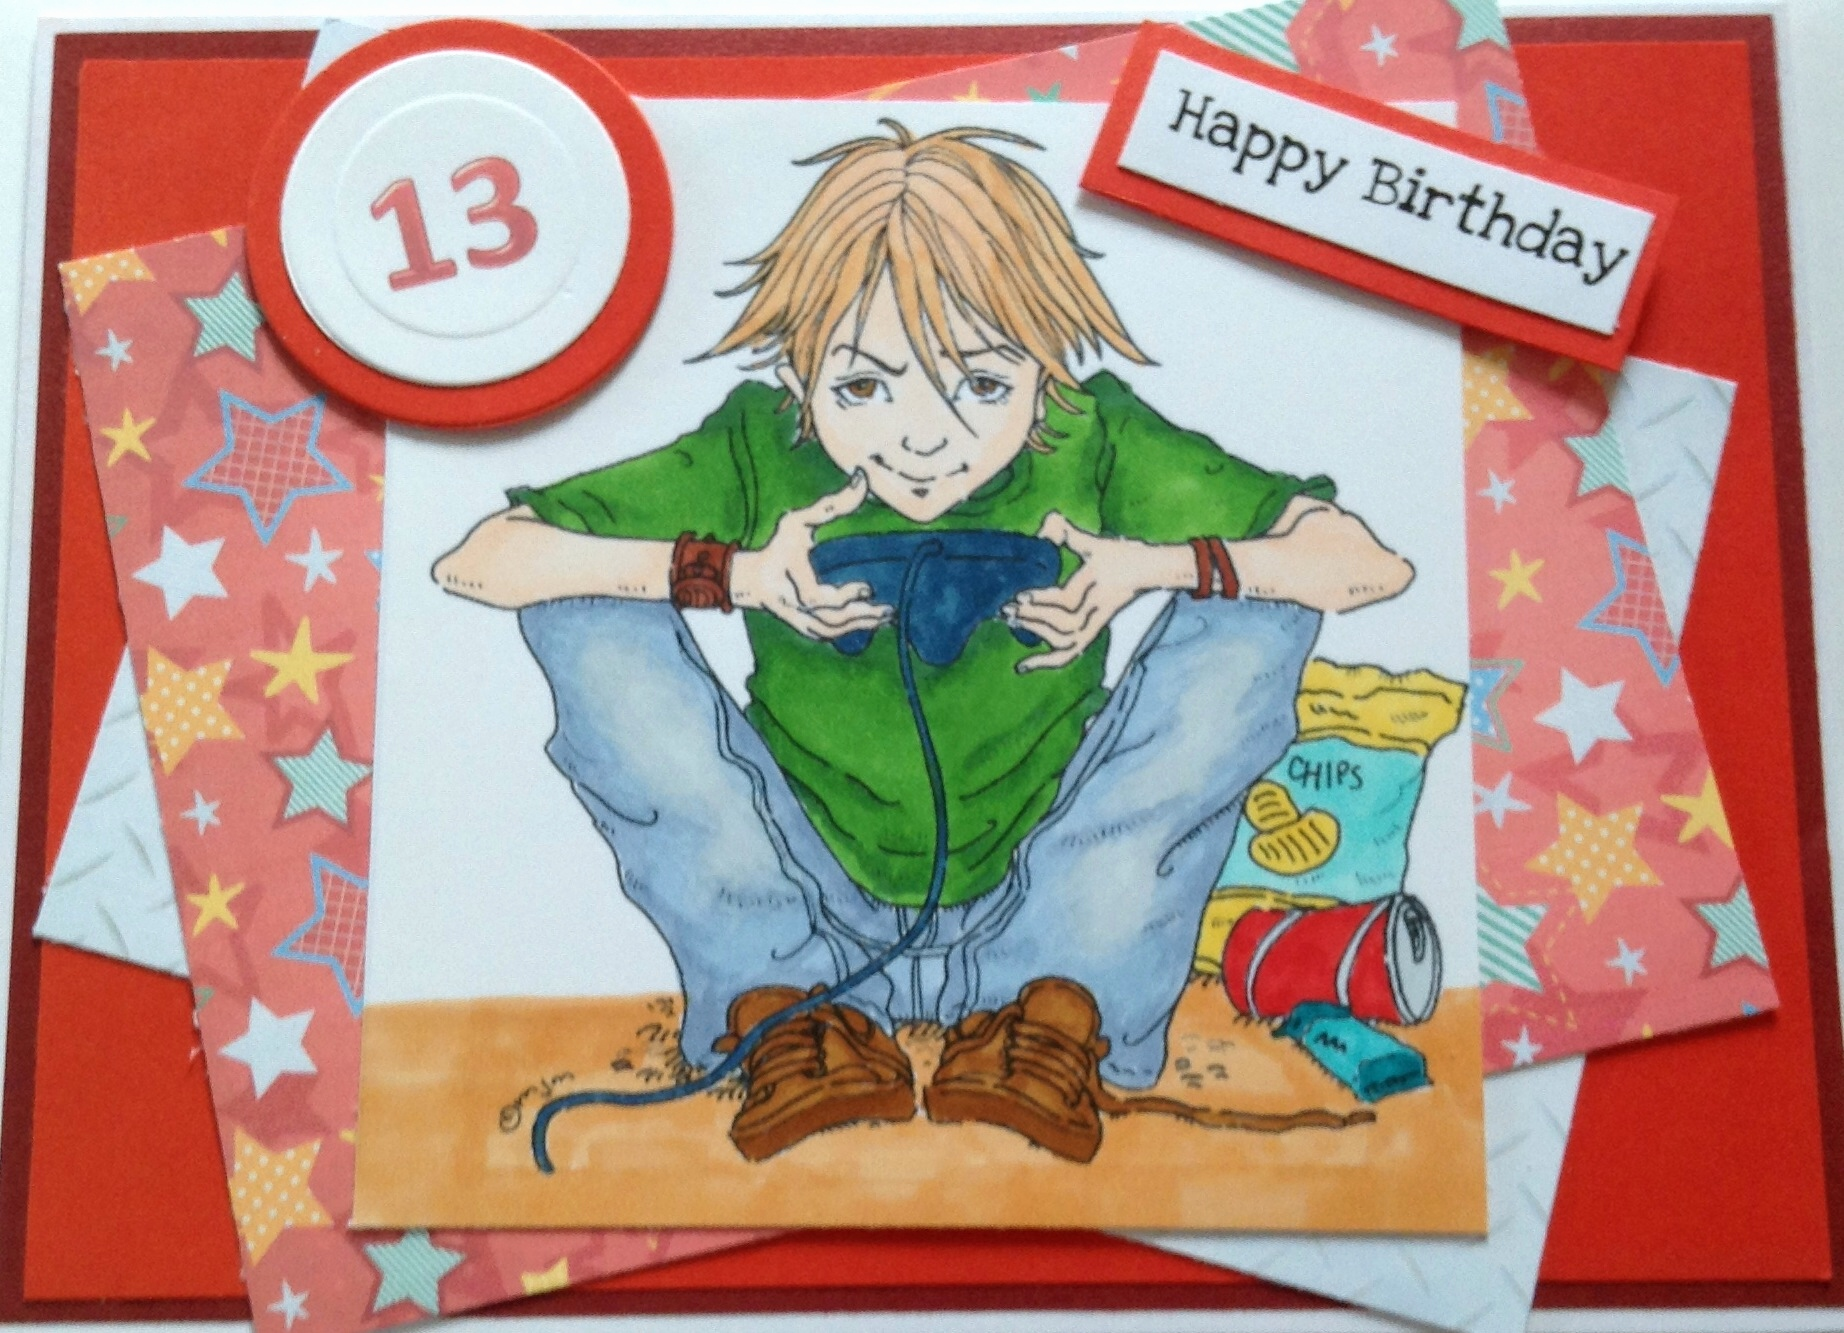 free teenage birthday cards ; birthday-card-for-teenager-boy-luxury-teenage-boys-birthday-card-of-birthday-card-for-teenager-boy